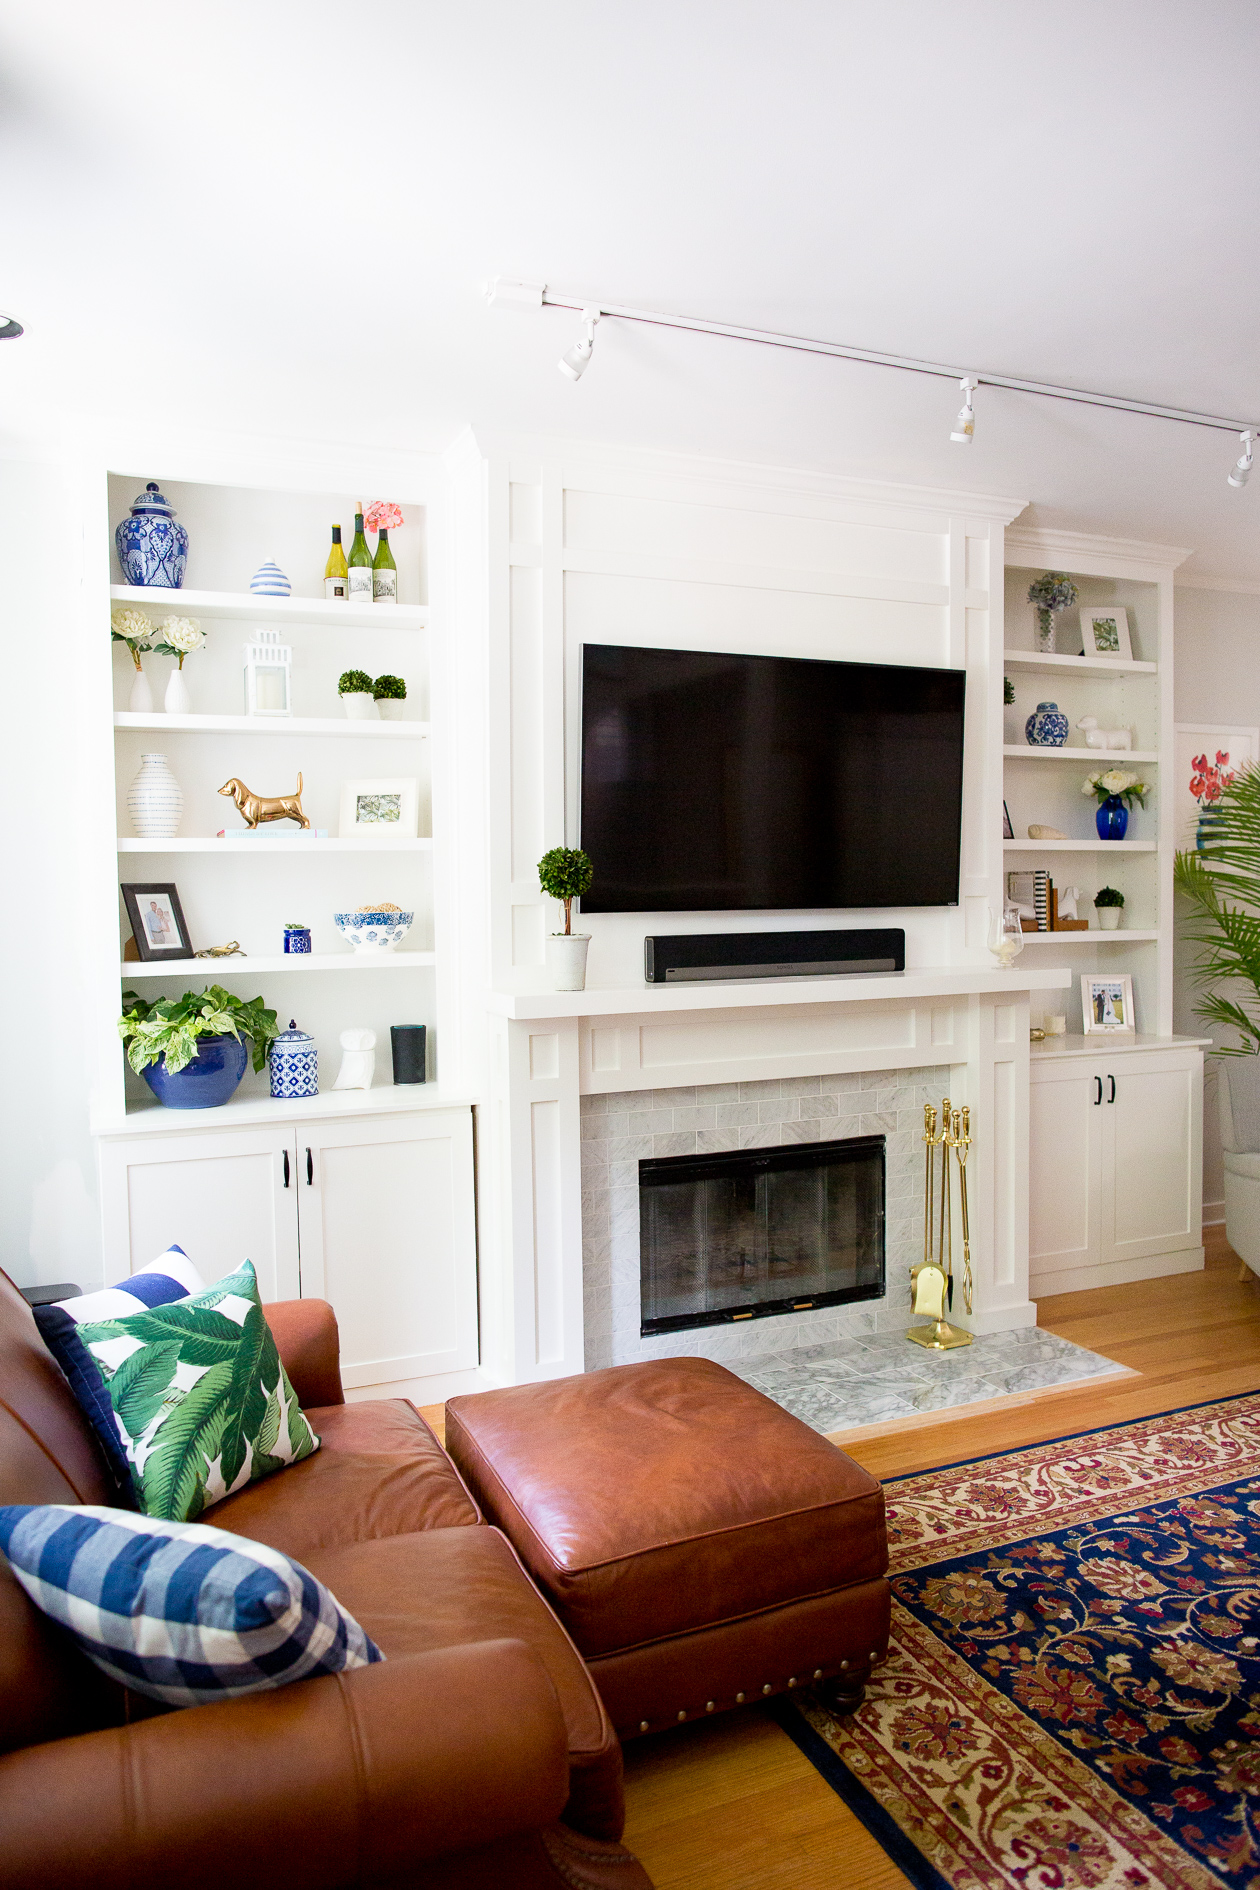 Kelly-in-the-City-Preppy-Living-Room-11-1